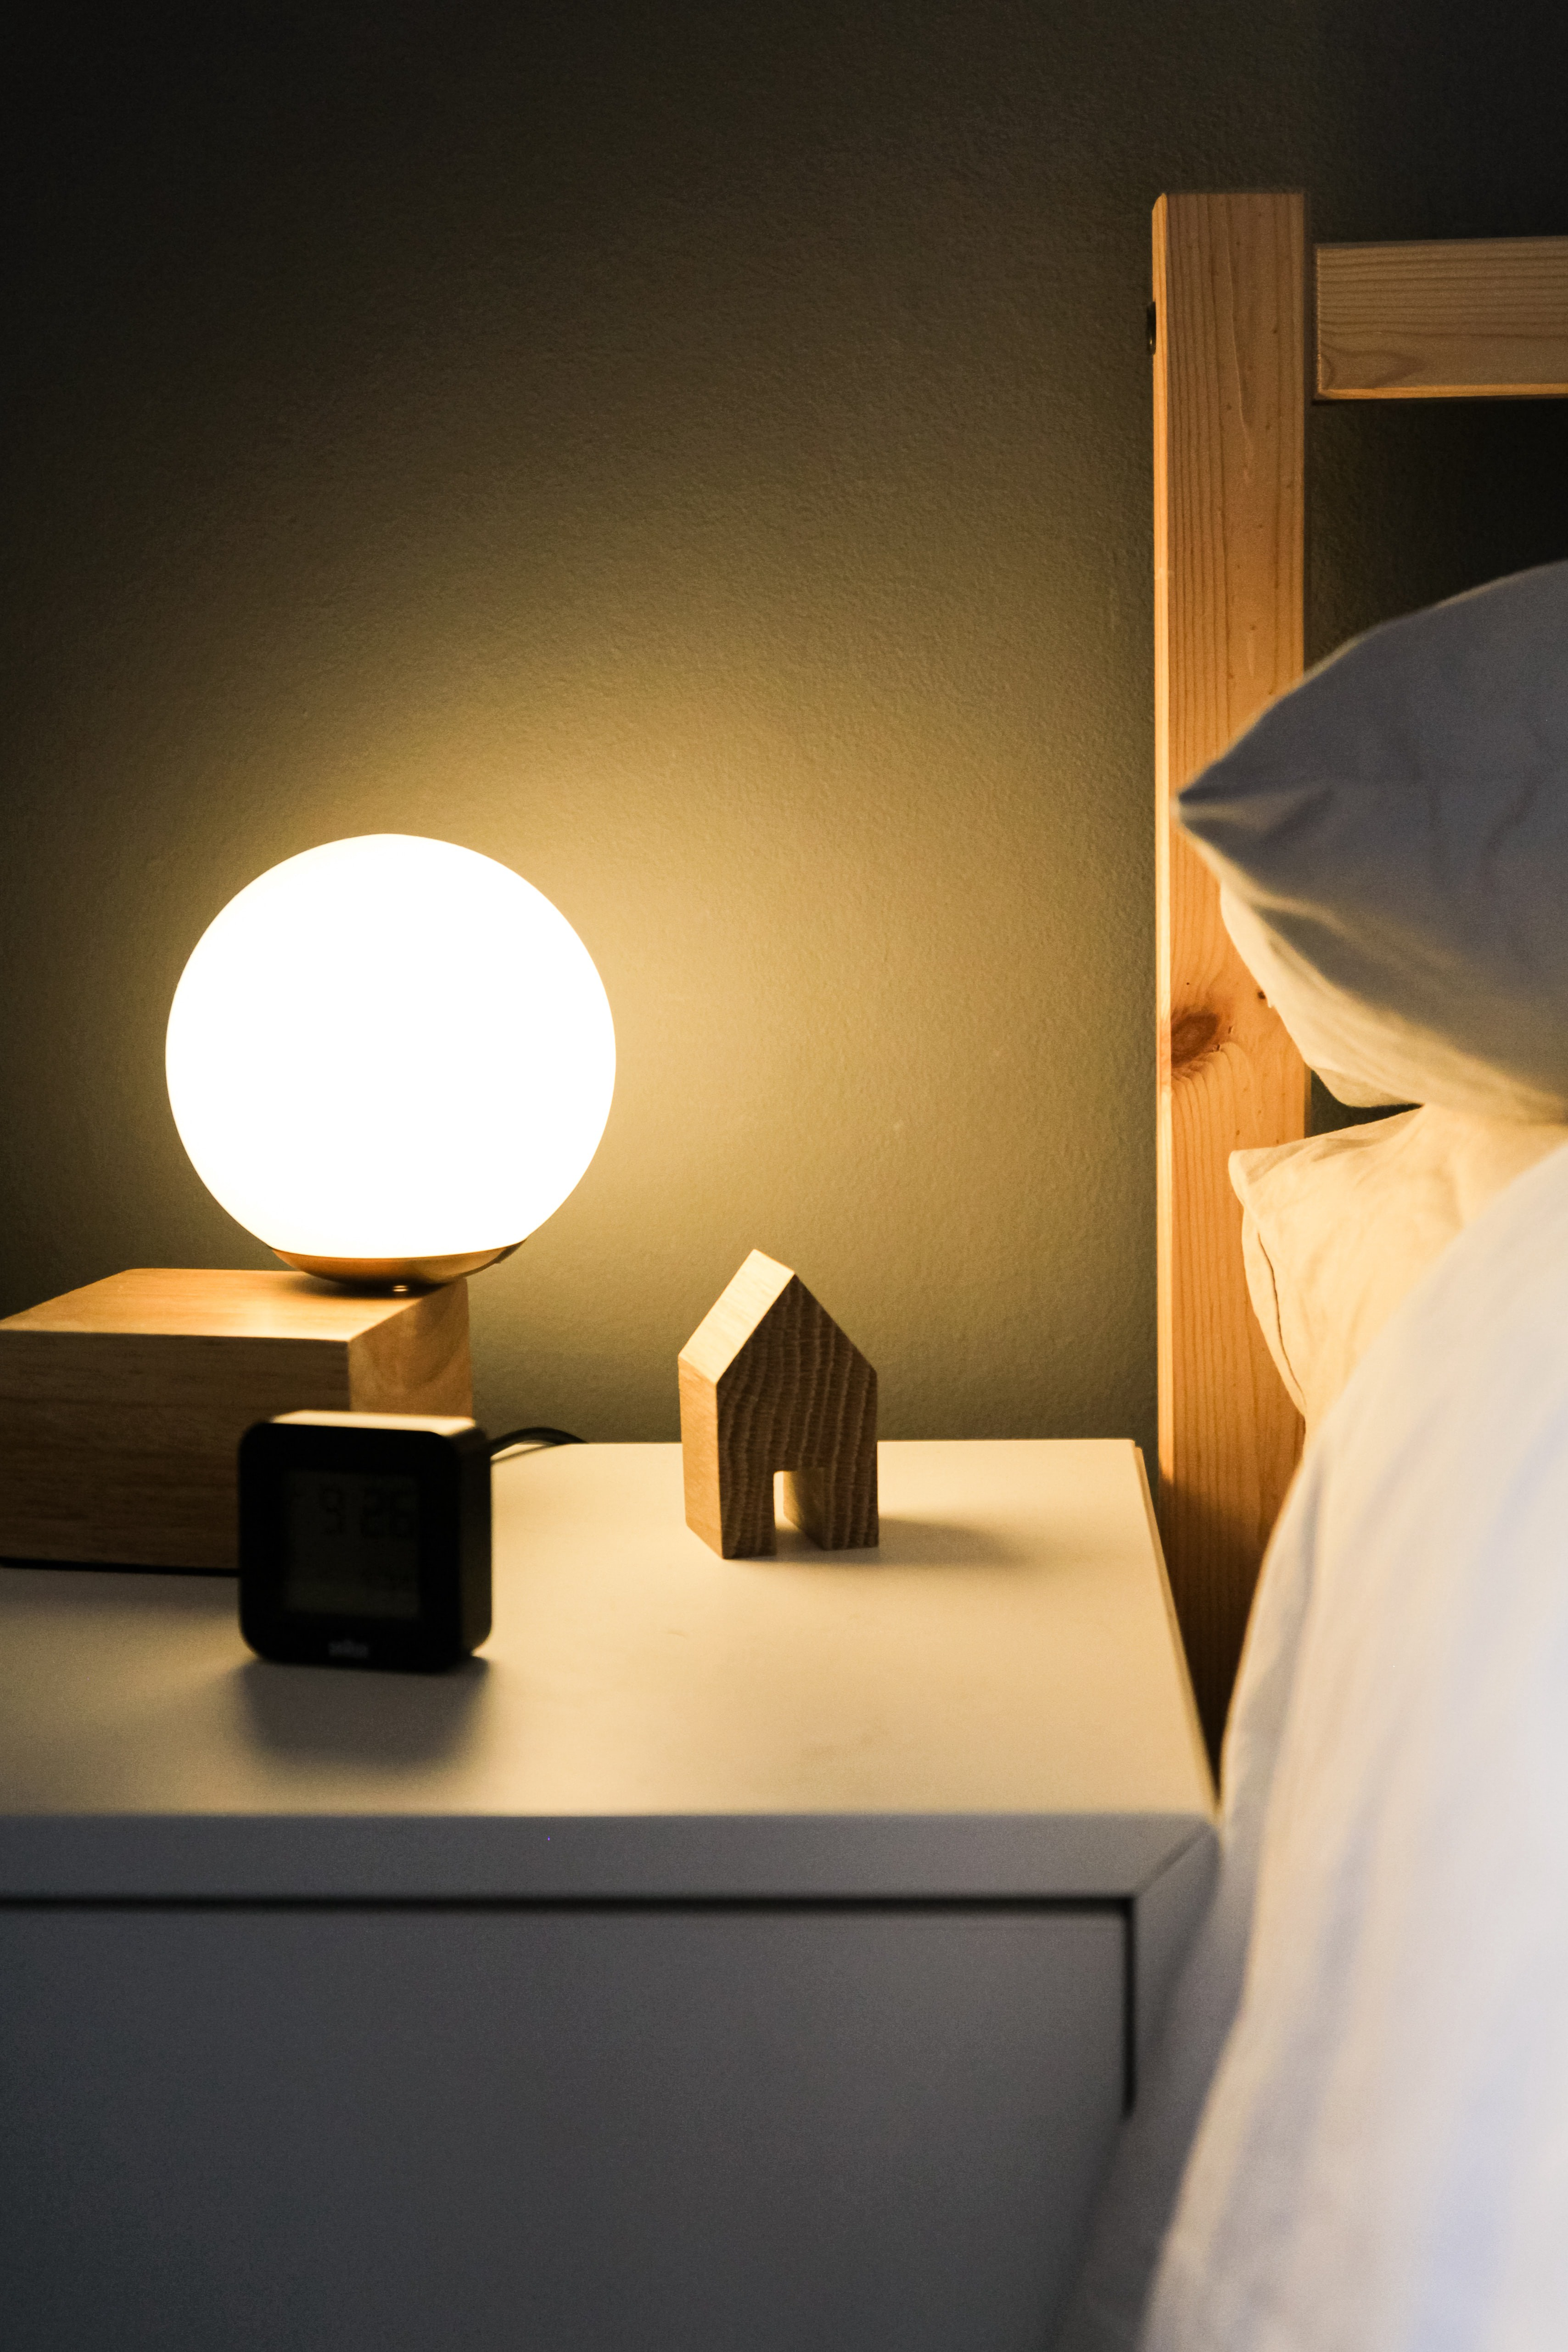 Nightstand with light, clock, and small wooden house next to a bed